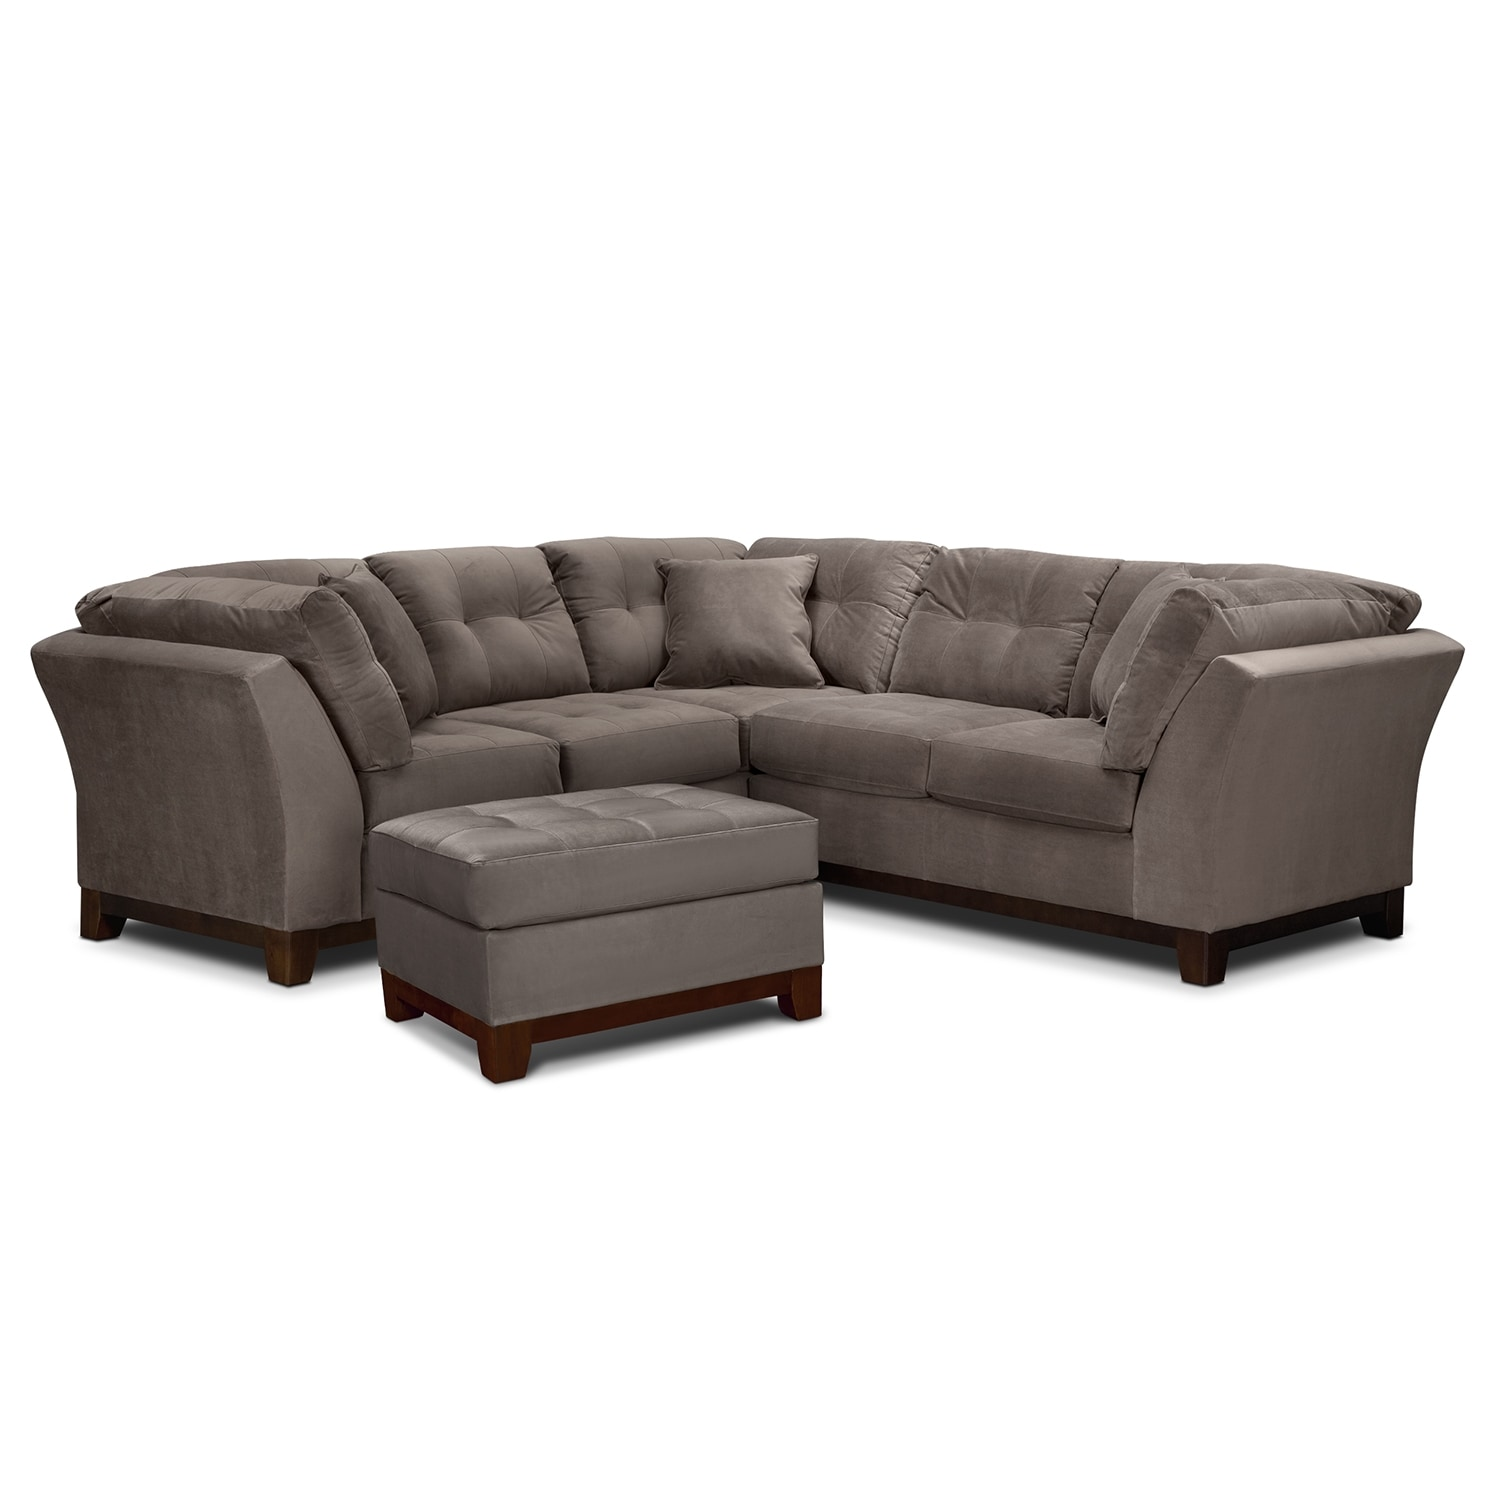 Living Room Furniture - Solace Gray II 2 Pc. Sectional (Alternate II) and Ottoman